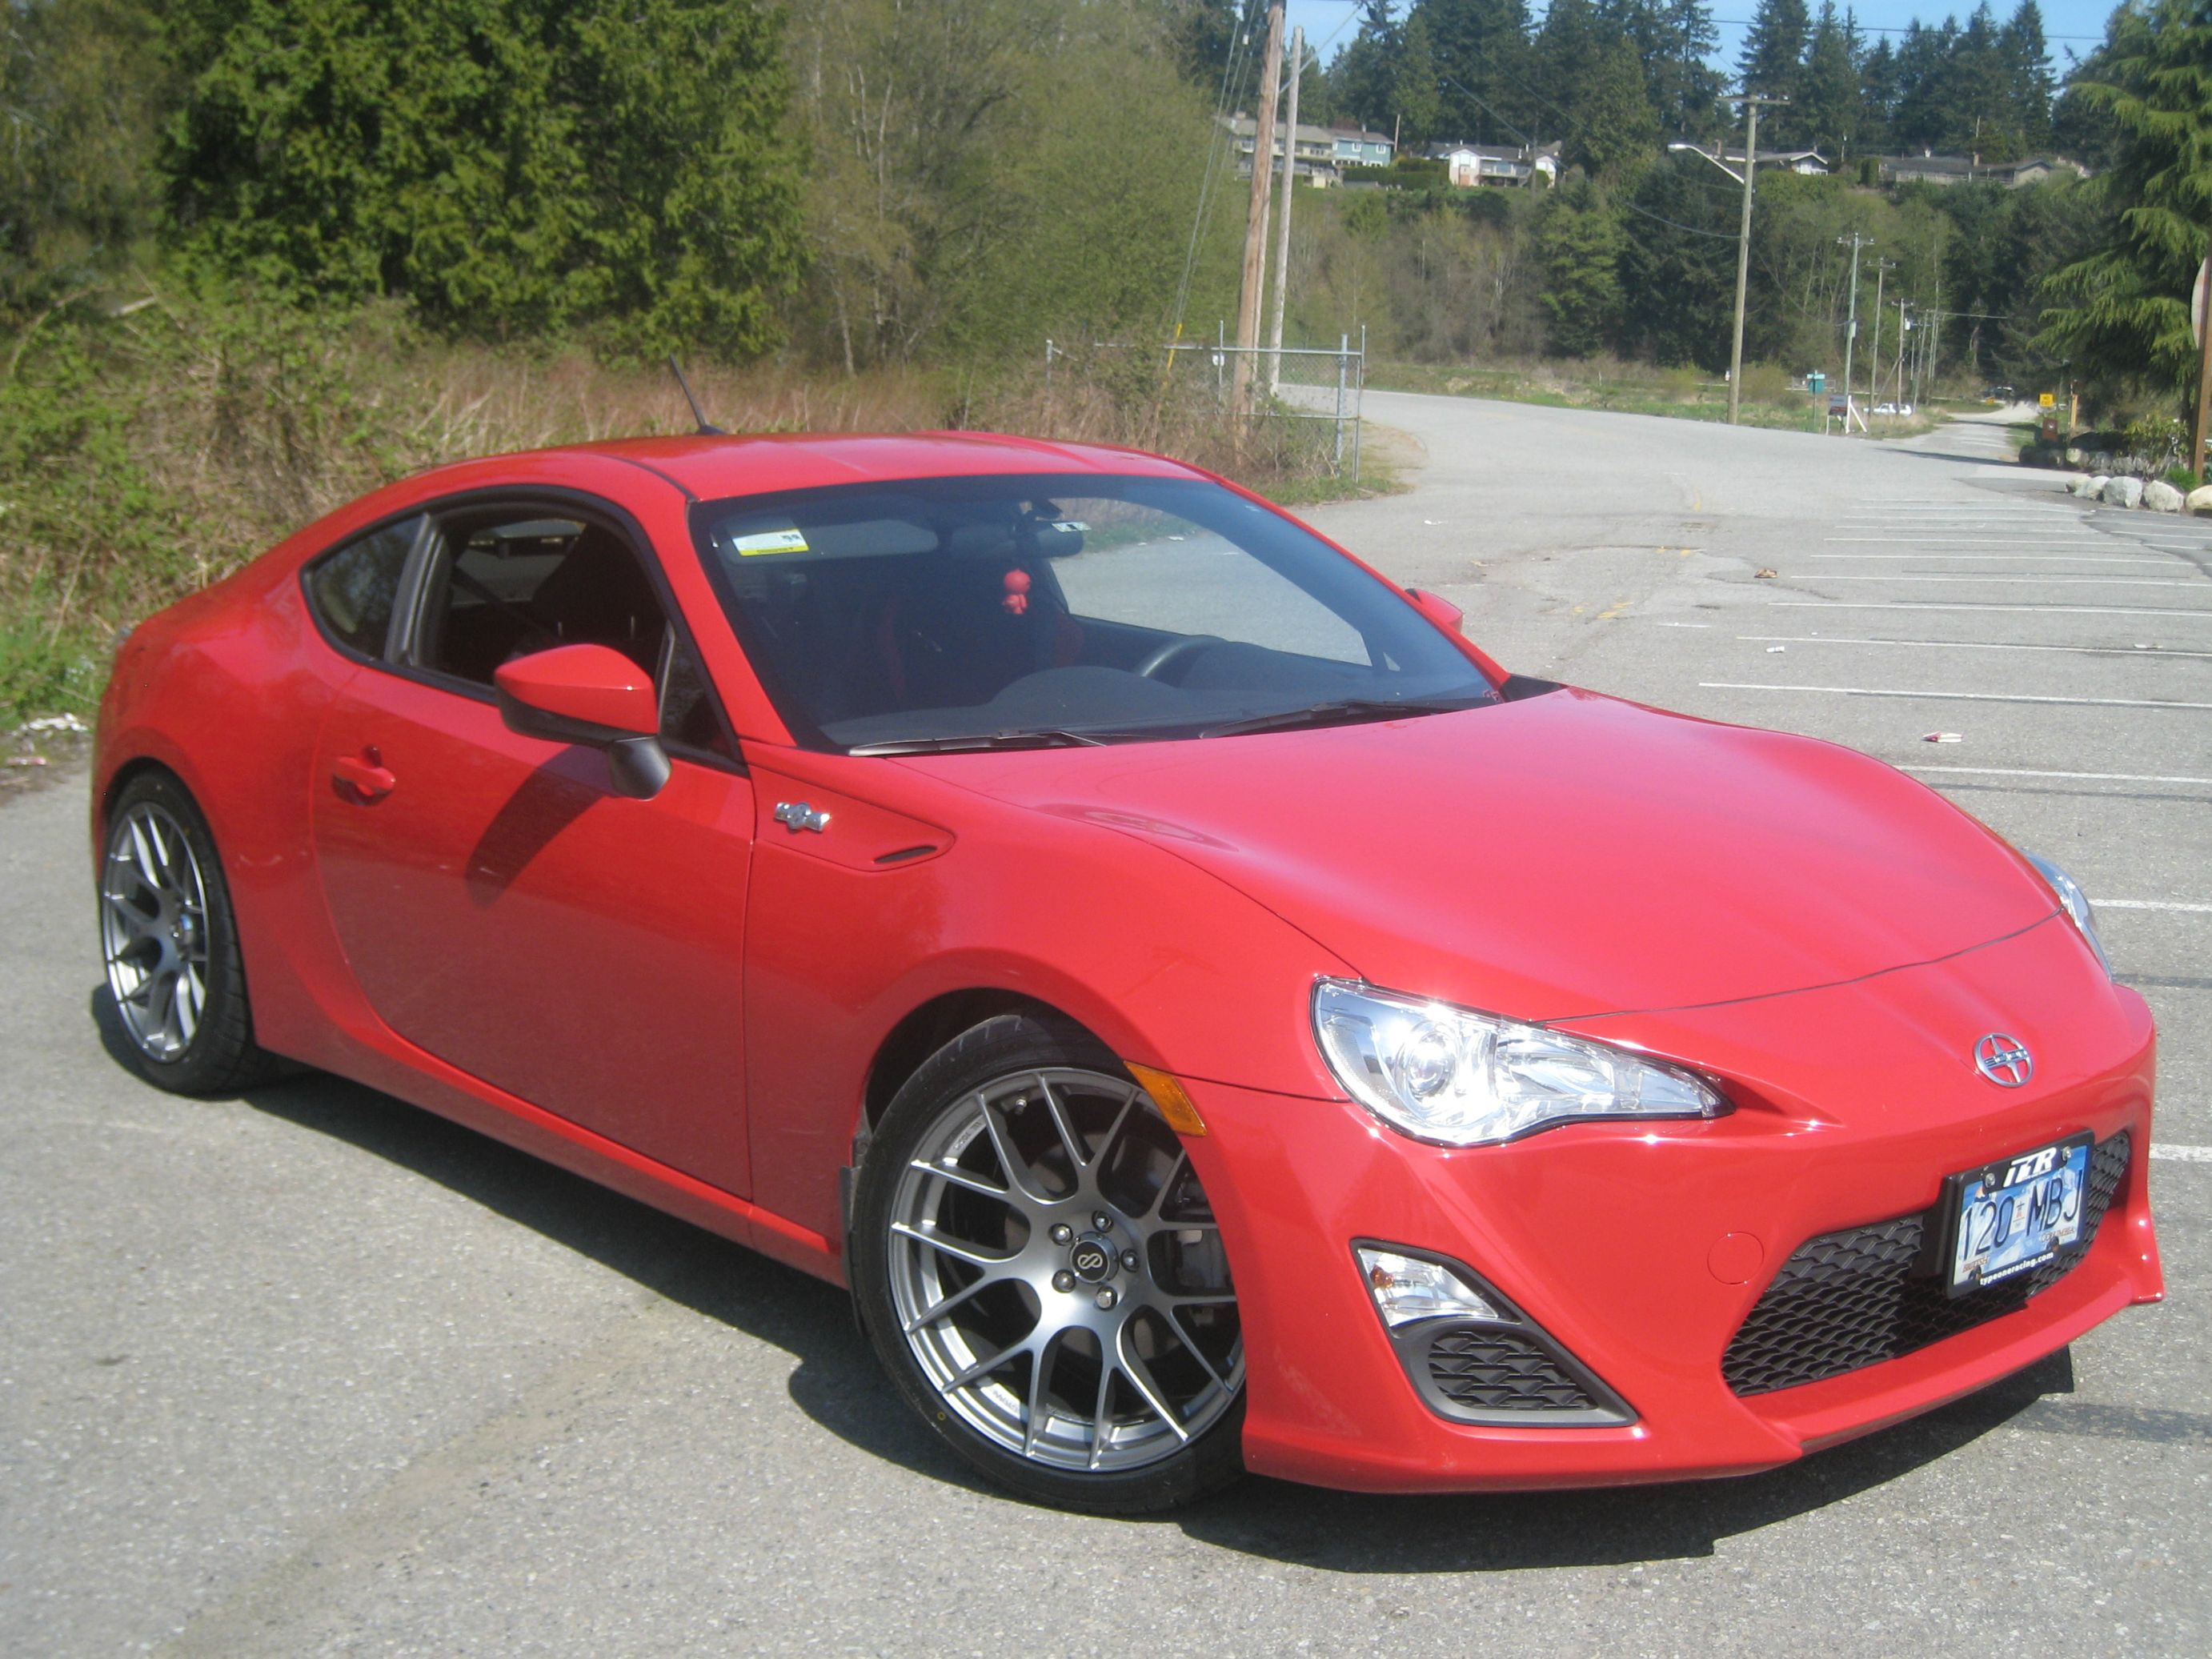 scion fr s custom wheels enkei raijin 18x9 5 et 45 tire size 255 35 r18 x et. Black Bedroom Furniture Sets. Home Design Ideas